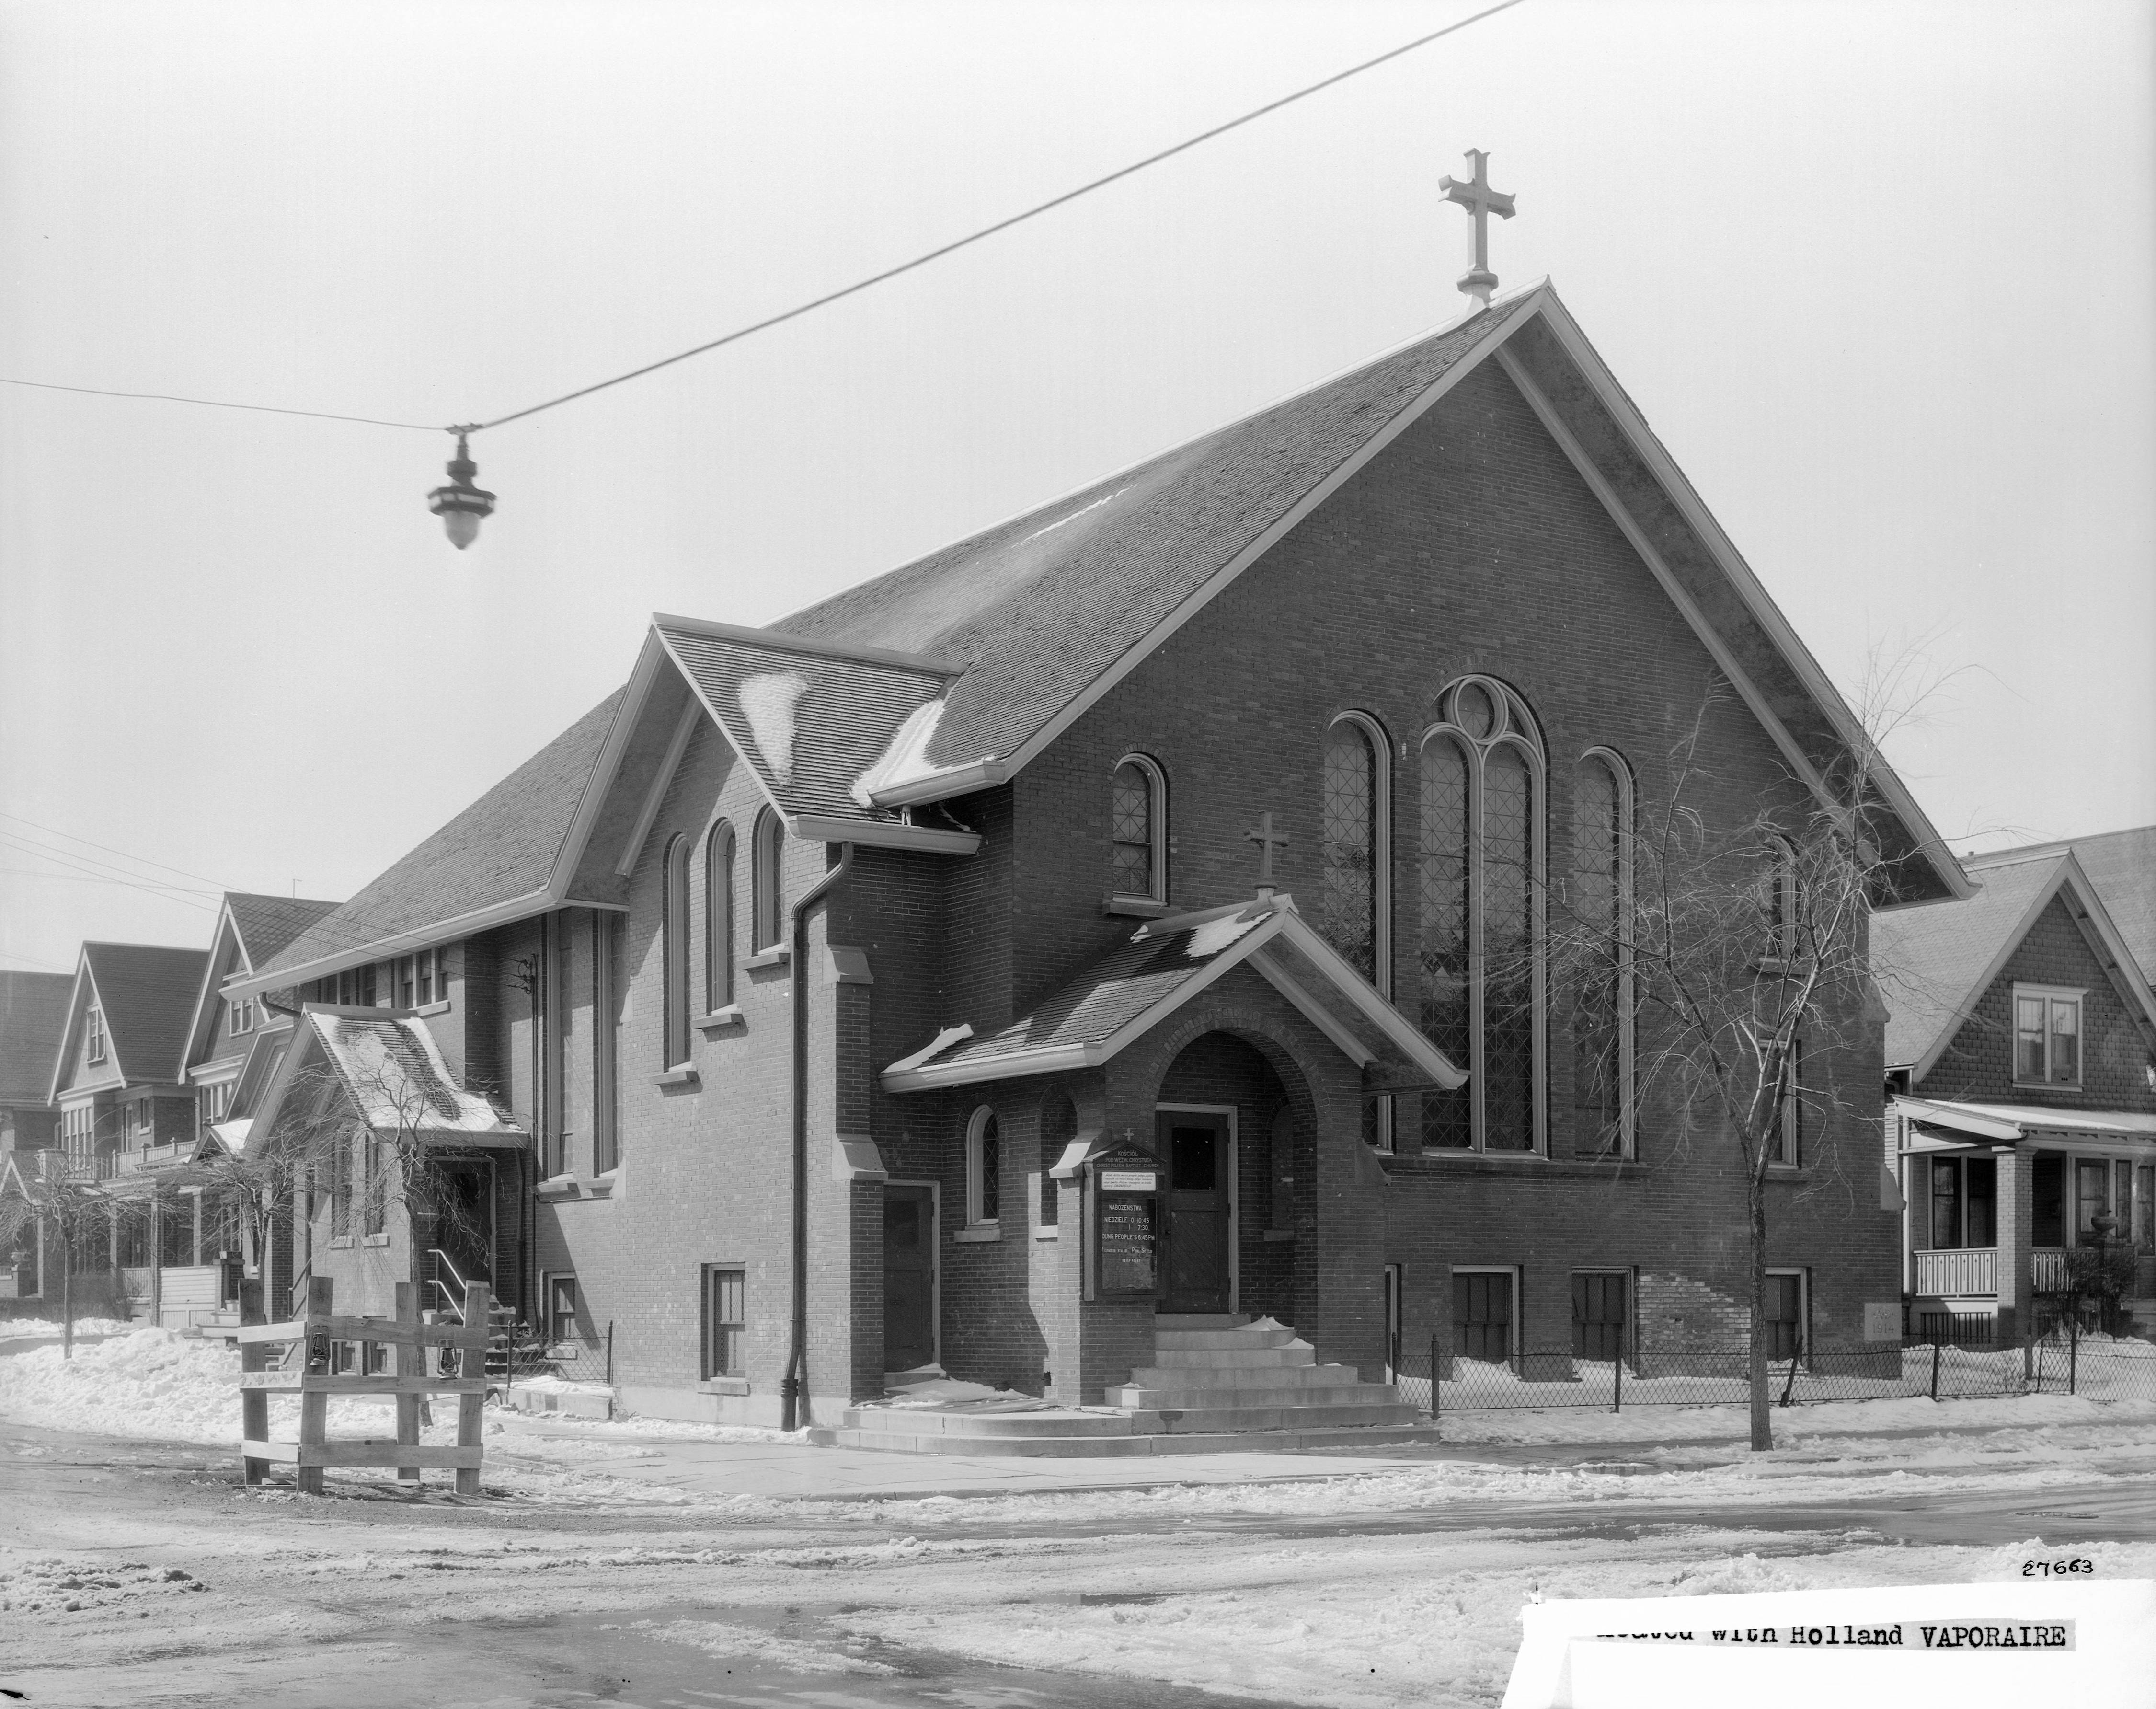 <table class=&quot;lightbox&quot;><tr><td colspan=2 class=&quot;lightbox-title&quot;>Christ Polish Baptist Church</td></tr><tr><td colspan=2 class=&quot;lightbox-caption&quot;>Many of Milwaukee's early Baptist churches were established within specific ethnic communities. The Polish Baptist Church, pictured here in 1930, was located in Milwaukee's Polish neighborhood on the city's south side.  </td></tr><tr><td colspan=2 class=&quot;lightbox-spacer&quot;></td></tr><tr class=&quot;lightbox-detail&quot;><td class=&quot;cell-title&quot;>Source: </td><td class=&quot;cell-value&quot;>From the James Blair Murdoch Photographs. Archives, University of Wisconsin-Milwaukee Libraries.<br /><a href=&quot;https://collections.lib.uwm.edu/digital/collection/jbmurdoch/id/465/rec/6&quot; target=&quot;_blank&quot;>University of Wisconsin-Milwaukee Libraries</a></td></tr><tr class=&quot;filler-row&quot;><td colspan=2>&nbsp;</td></tr></table>